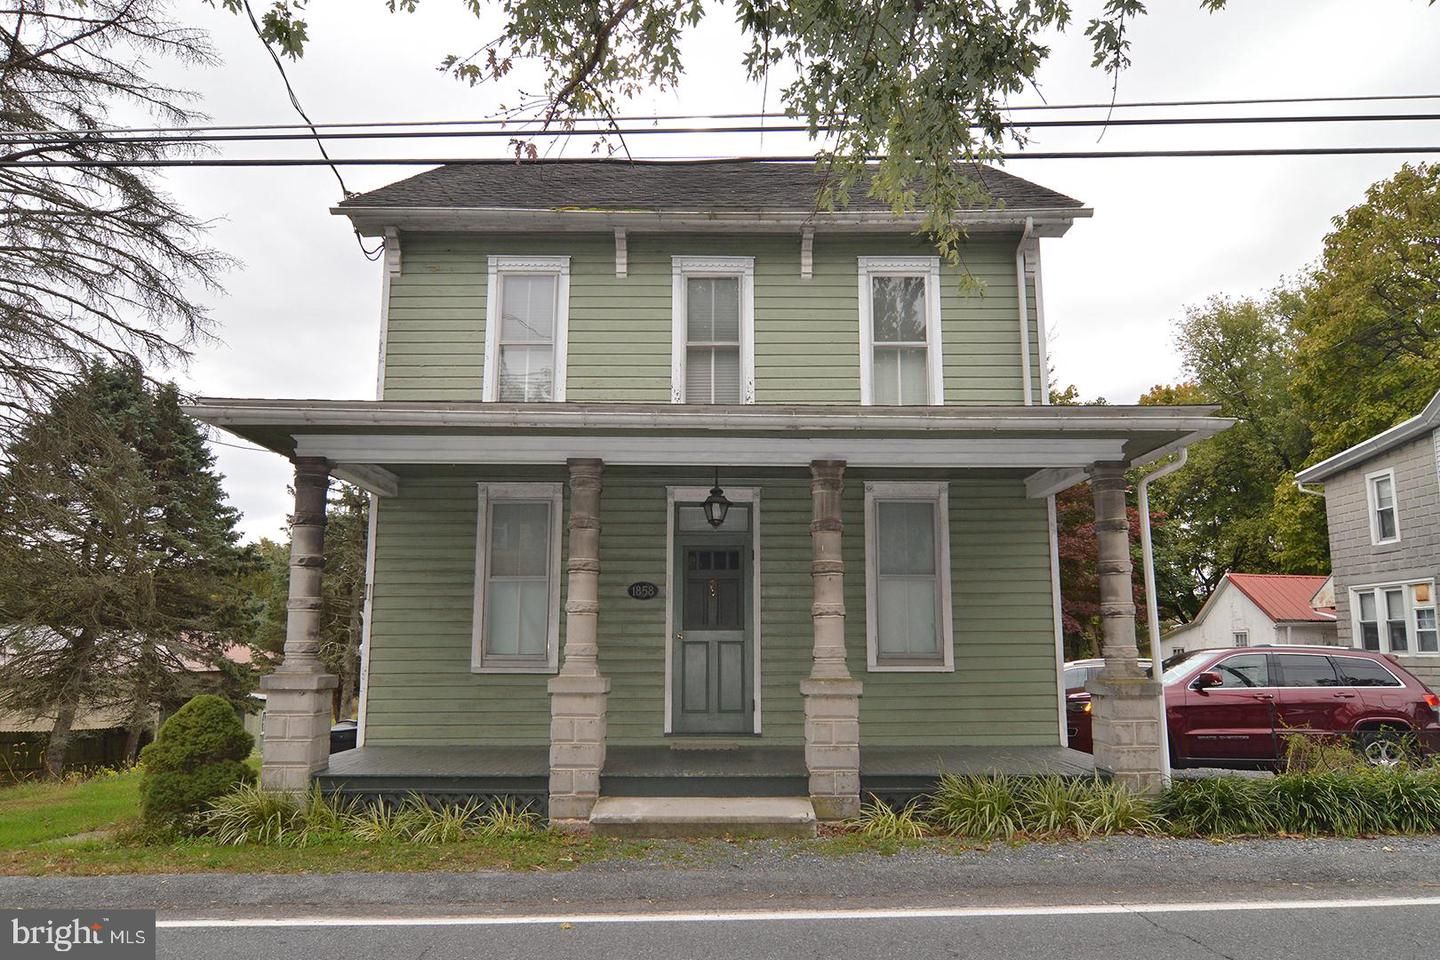 1858 Old Lancaster Pike Reading, PA 19608